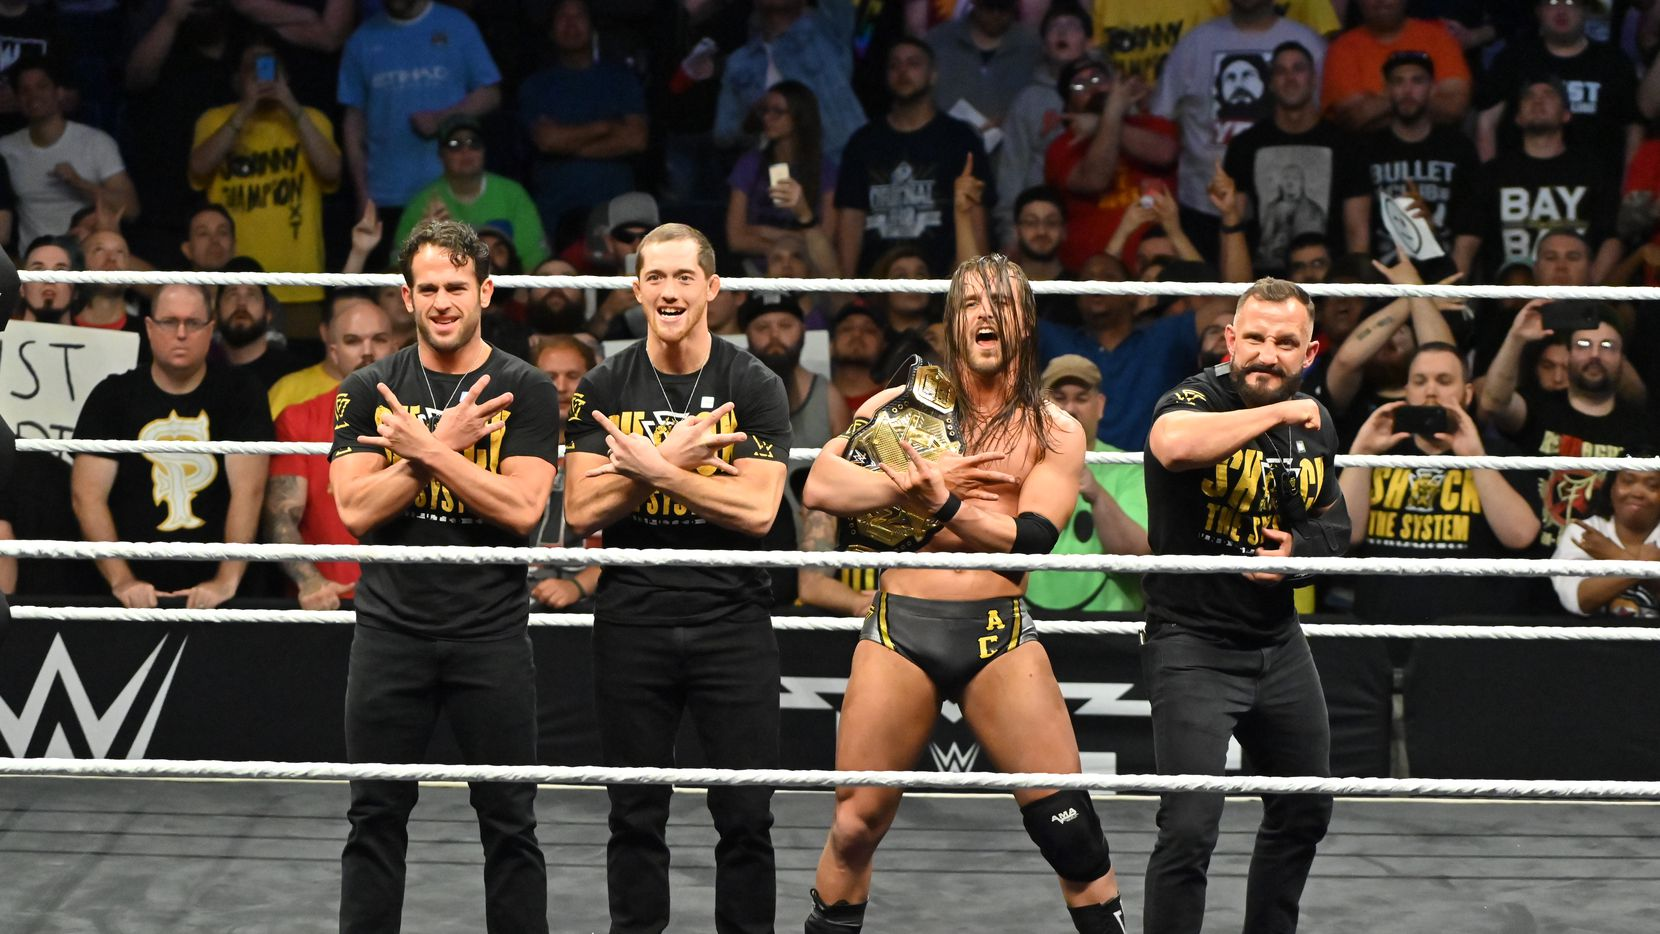 Adam Cole poses with the NXT championship alongside the Undisputed Era.